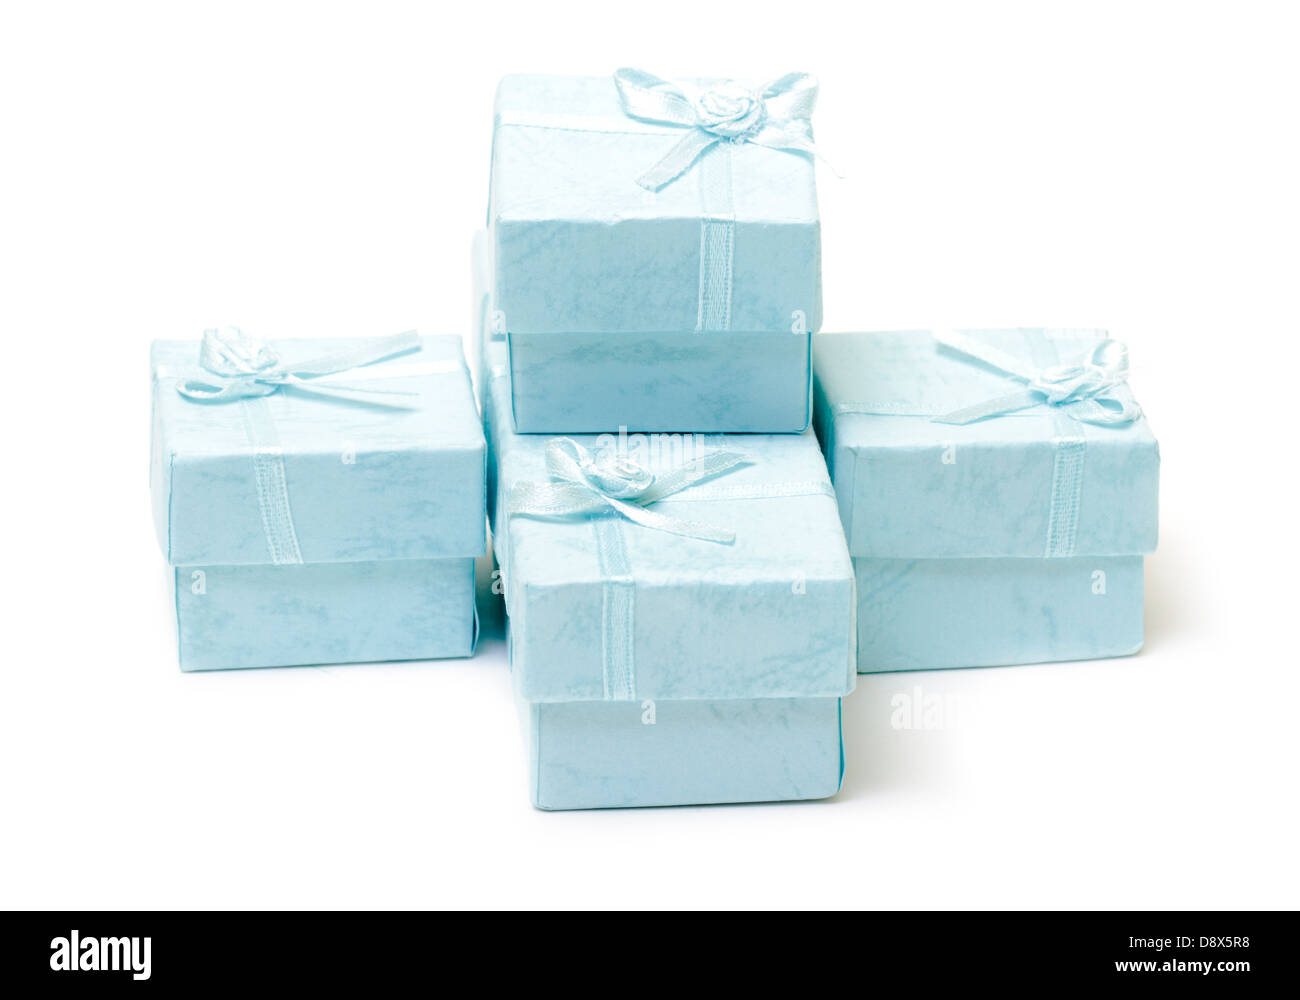 Cyan gift boxes on white background - Stock Image